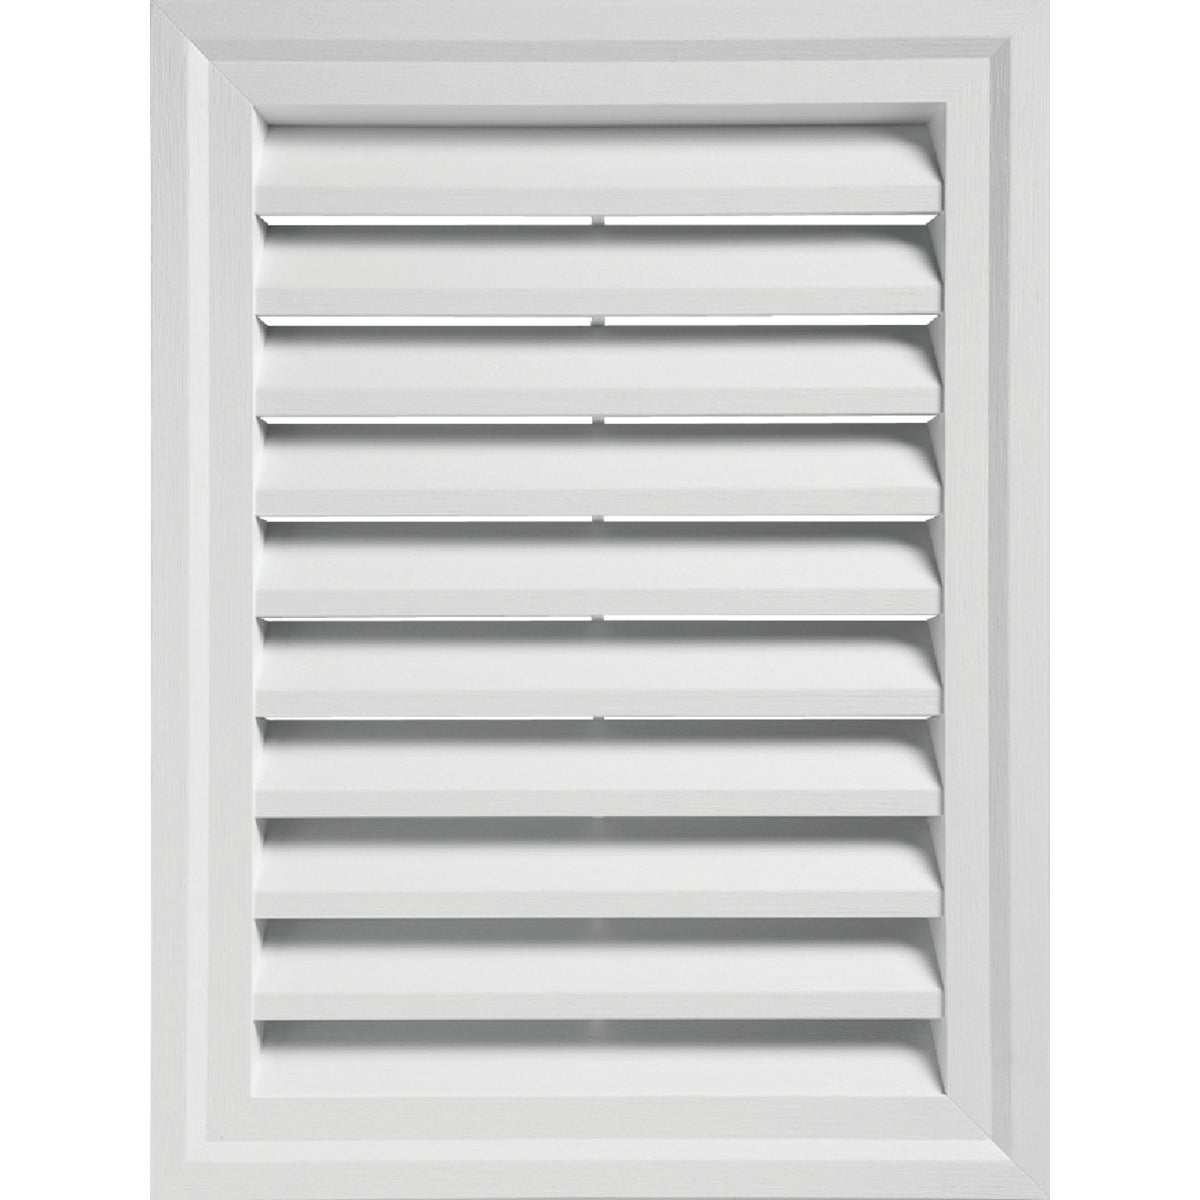 WHITE RECTGLE GABLE VENT